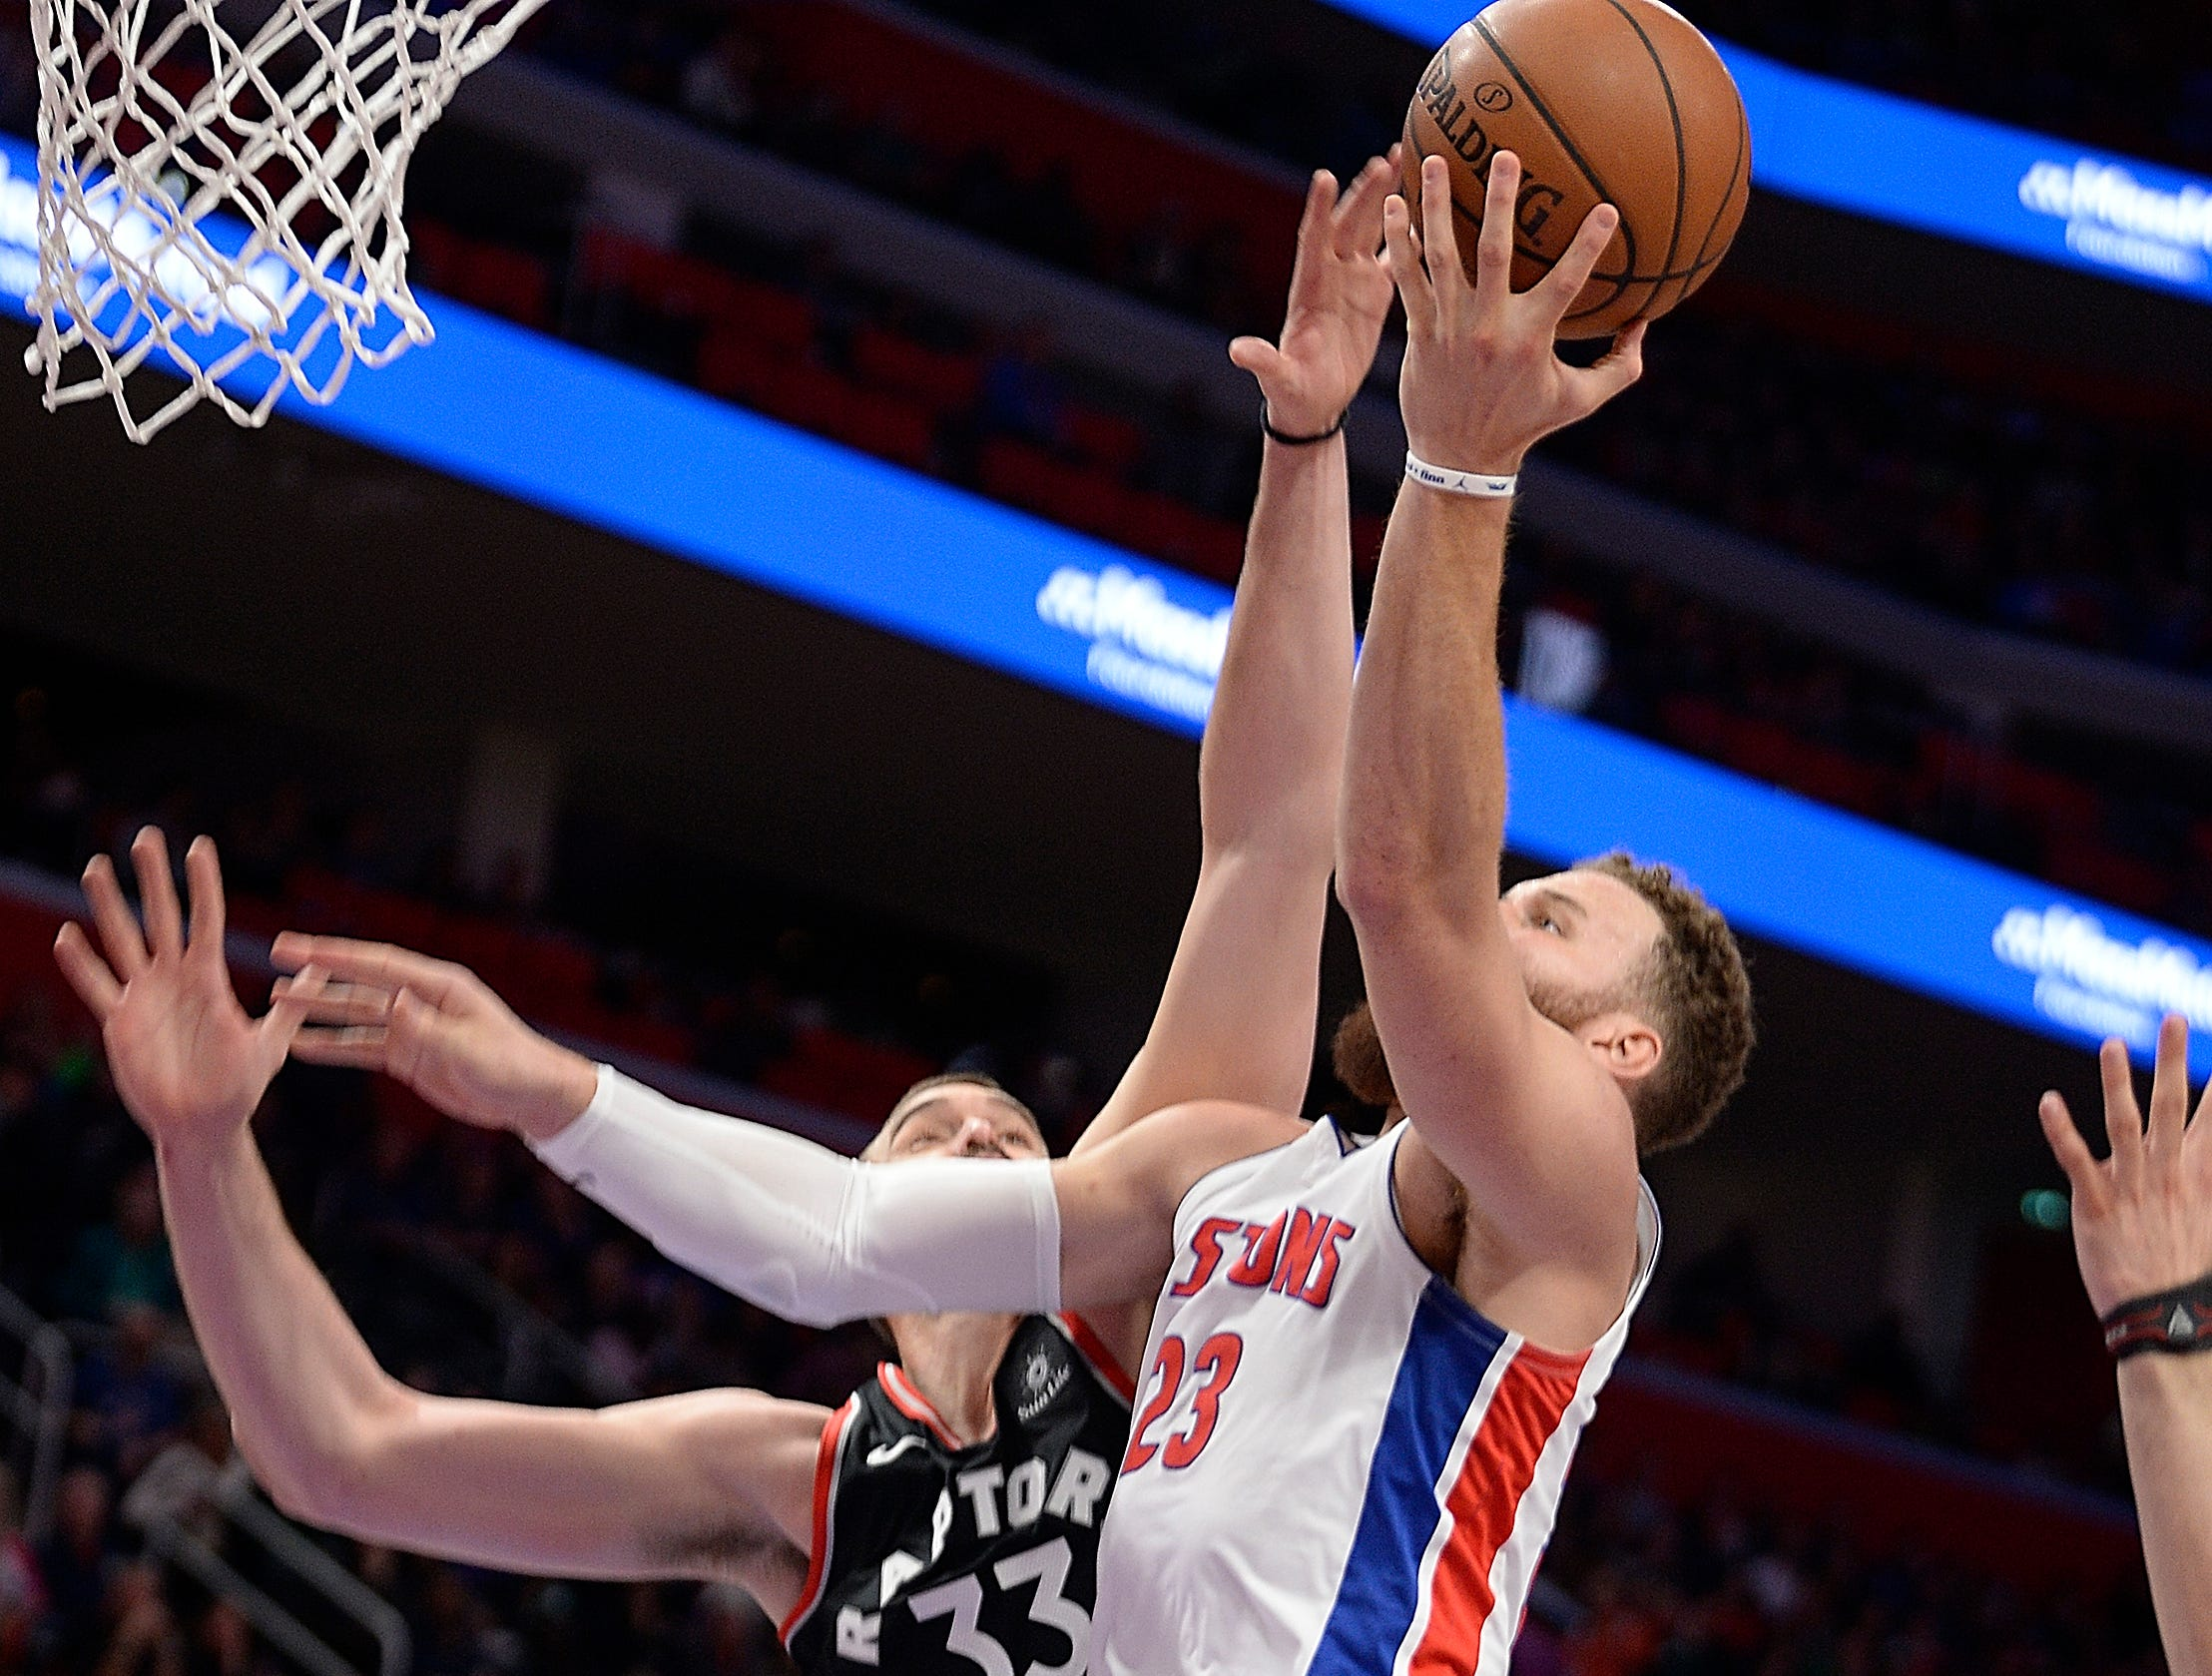 Pistons' Blake Griffin scores over Raptors' Marc Gasol in the fourth quarter. Griffin had 25 points and 8 rebounds.